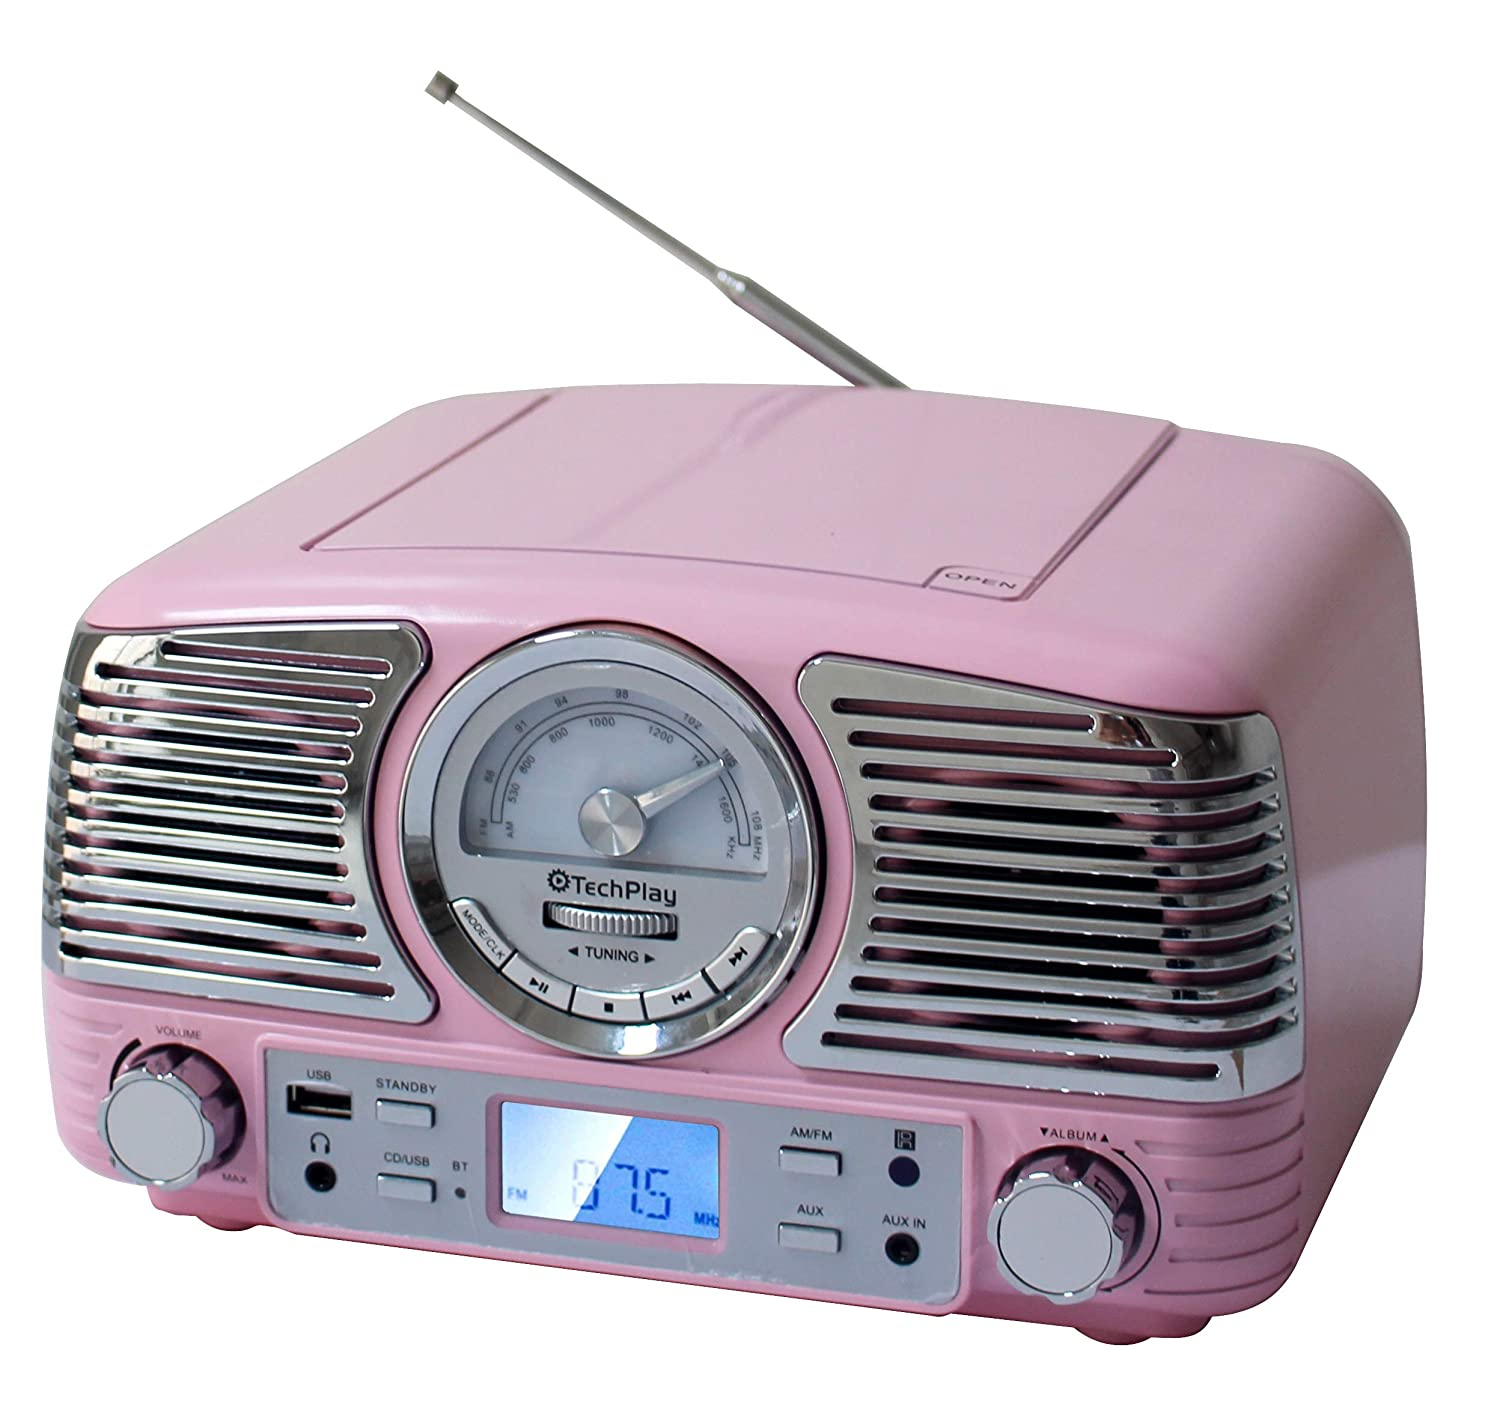 TechPlay QT62BT, Retro Design Compact Stereo CD, with AM/FM Rotary knob, Wireless Bluetooth Reception, SD and USB Ports. with AUX in and Headphone Jack (Turqouise) 4332834265